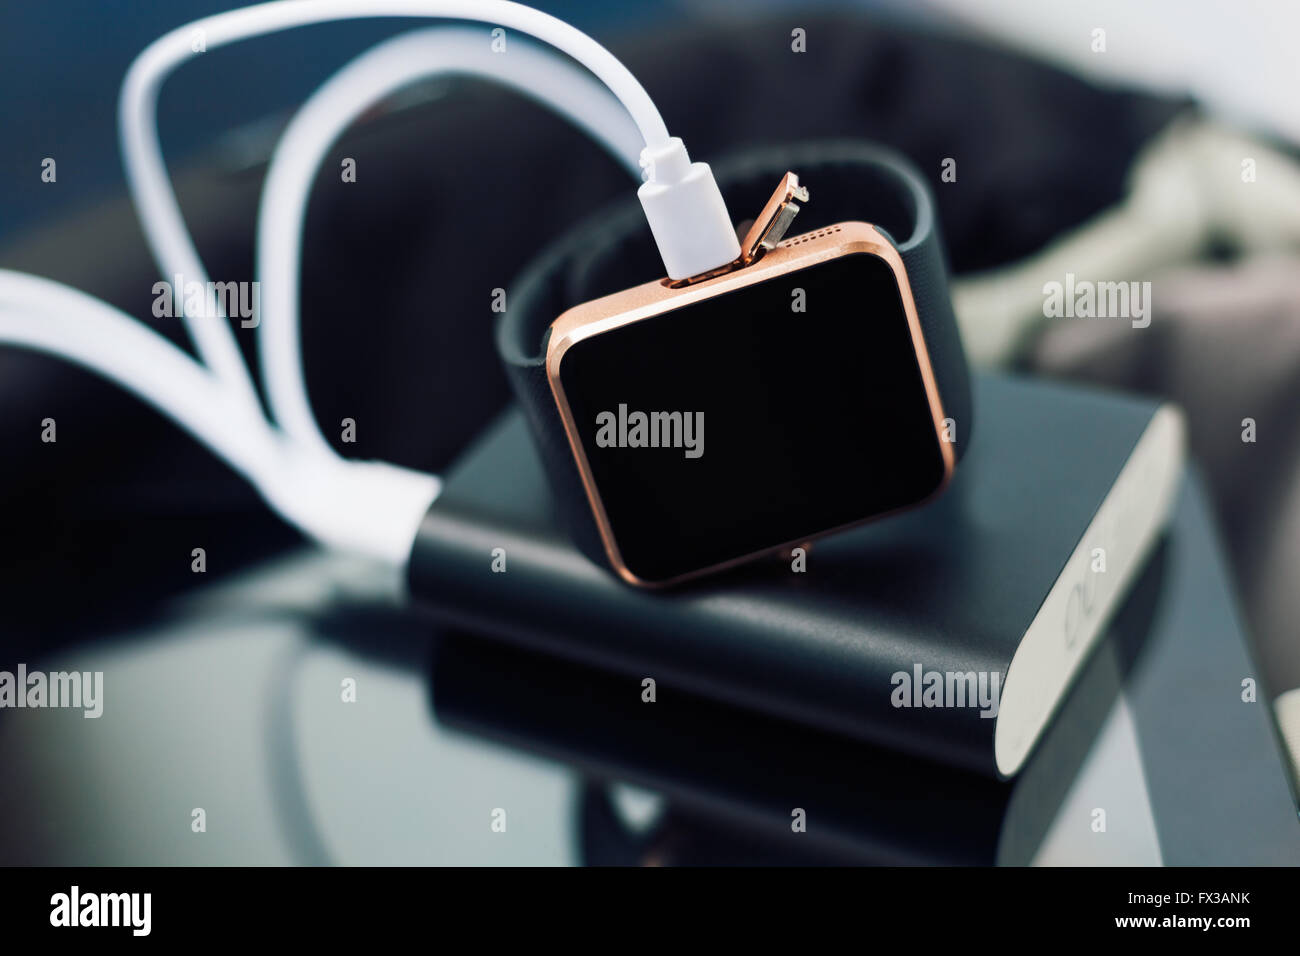 Smart wrist watch charging from a travel powerbank charger. Travel and stay connected to the media networks form - Stock Image